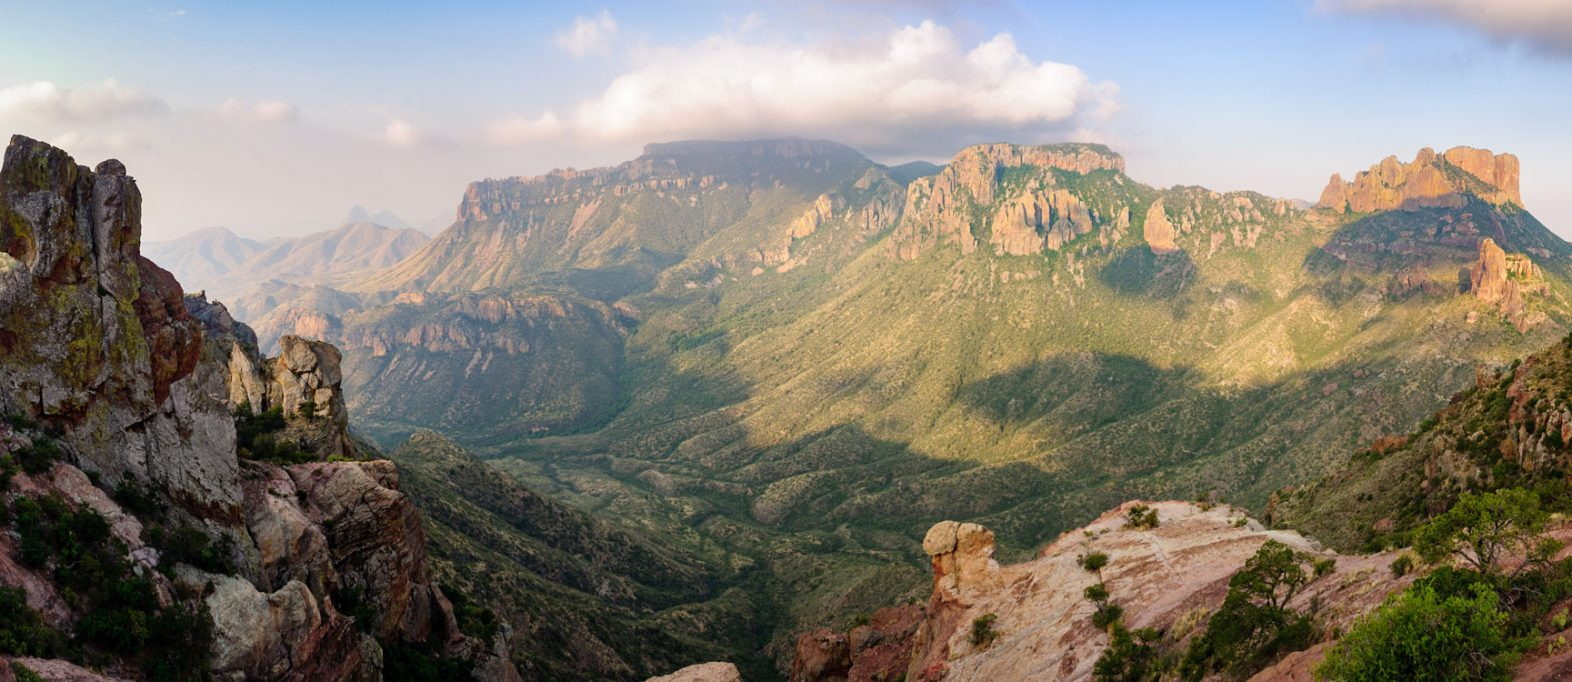 Big Bend Nationalpark, Texas (credit: Adobe Stock, ID: 126278829)